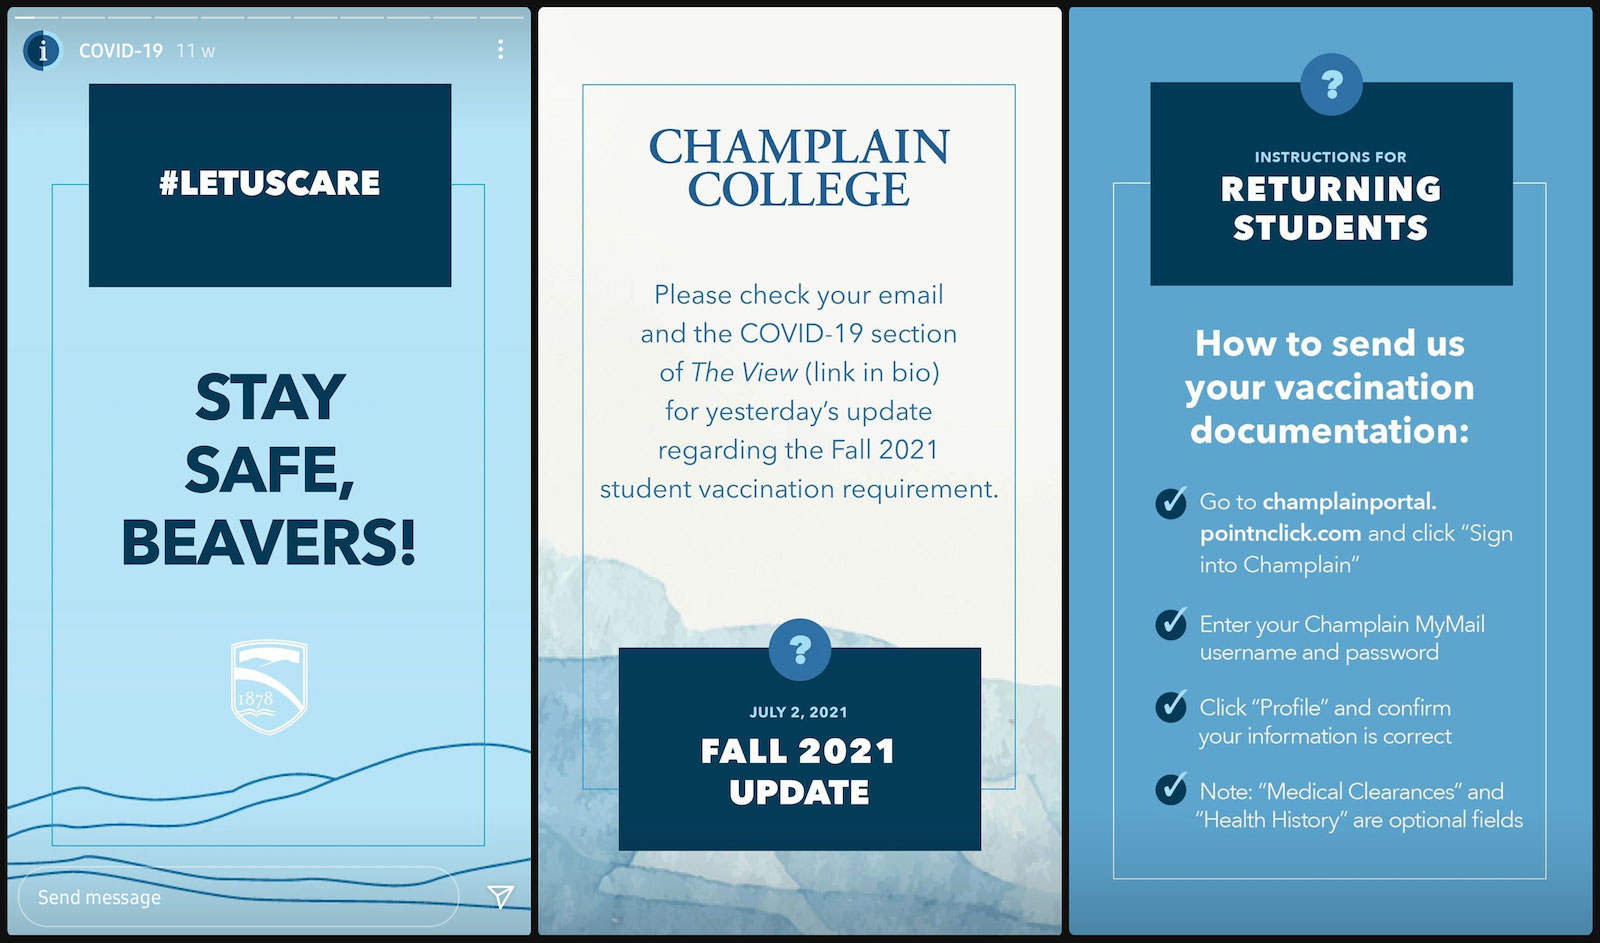 """Side-by-side of three Instagram stories posted by Champlain relating to COVID-19. The first one reads, """"Stay safe, beavers!"""" and sports the #LetUsCare hashtag. The second one reminds students where they can find up-to-date COVID-19 information, and the third screenshot shows information for returning students regarding their vaccination documentation."""